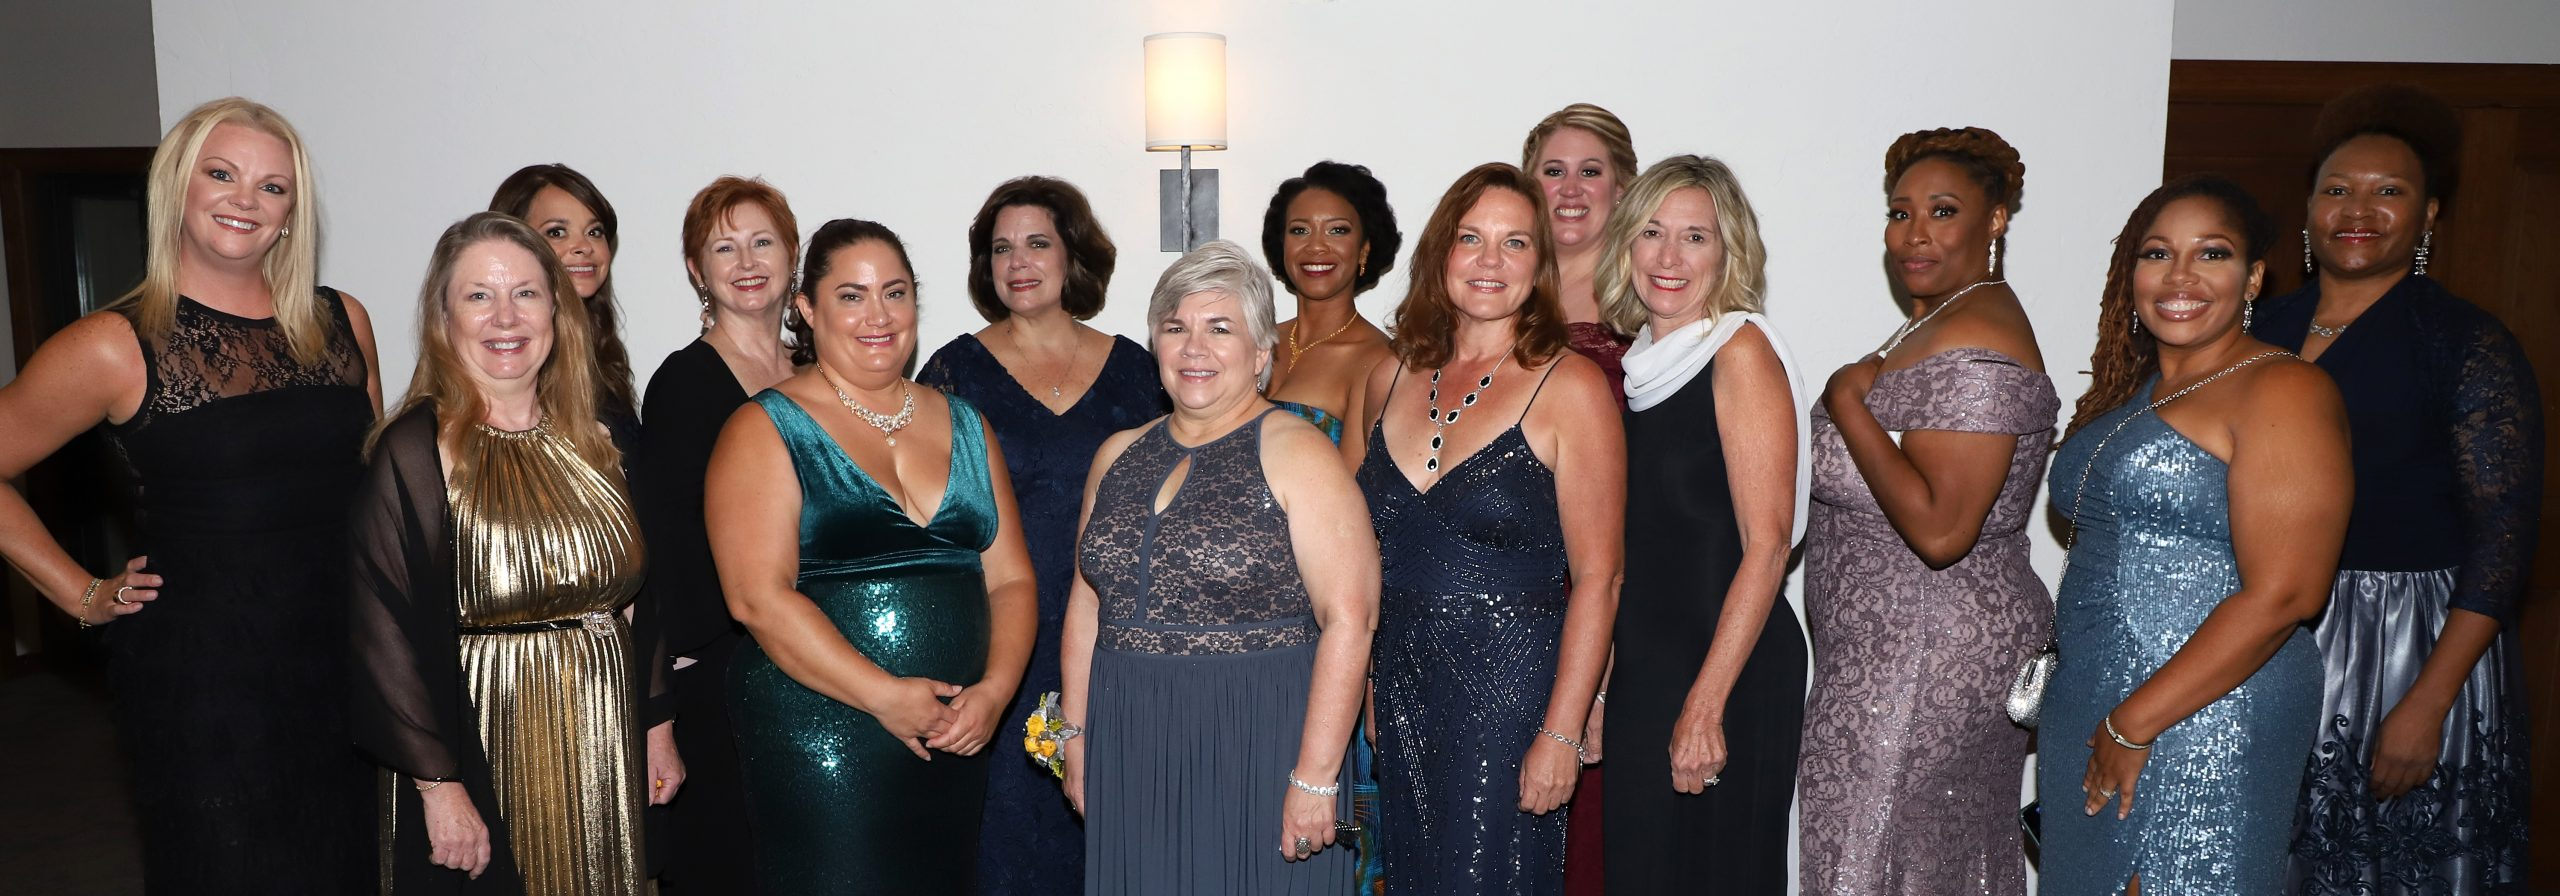 2020 Women of Excellence